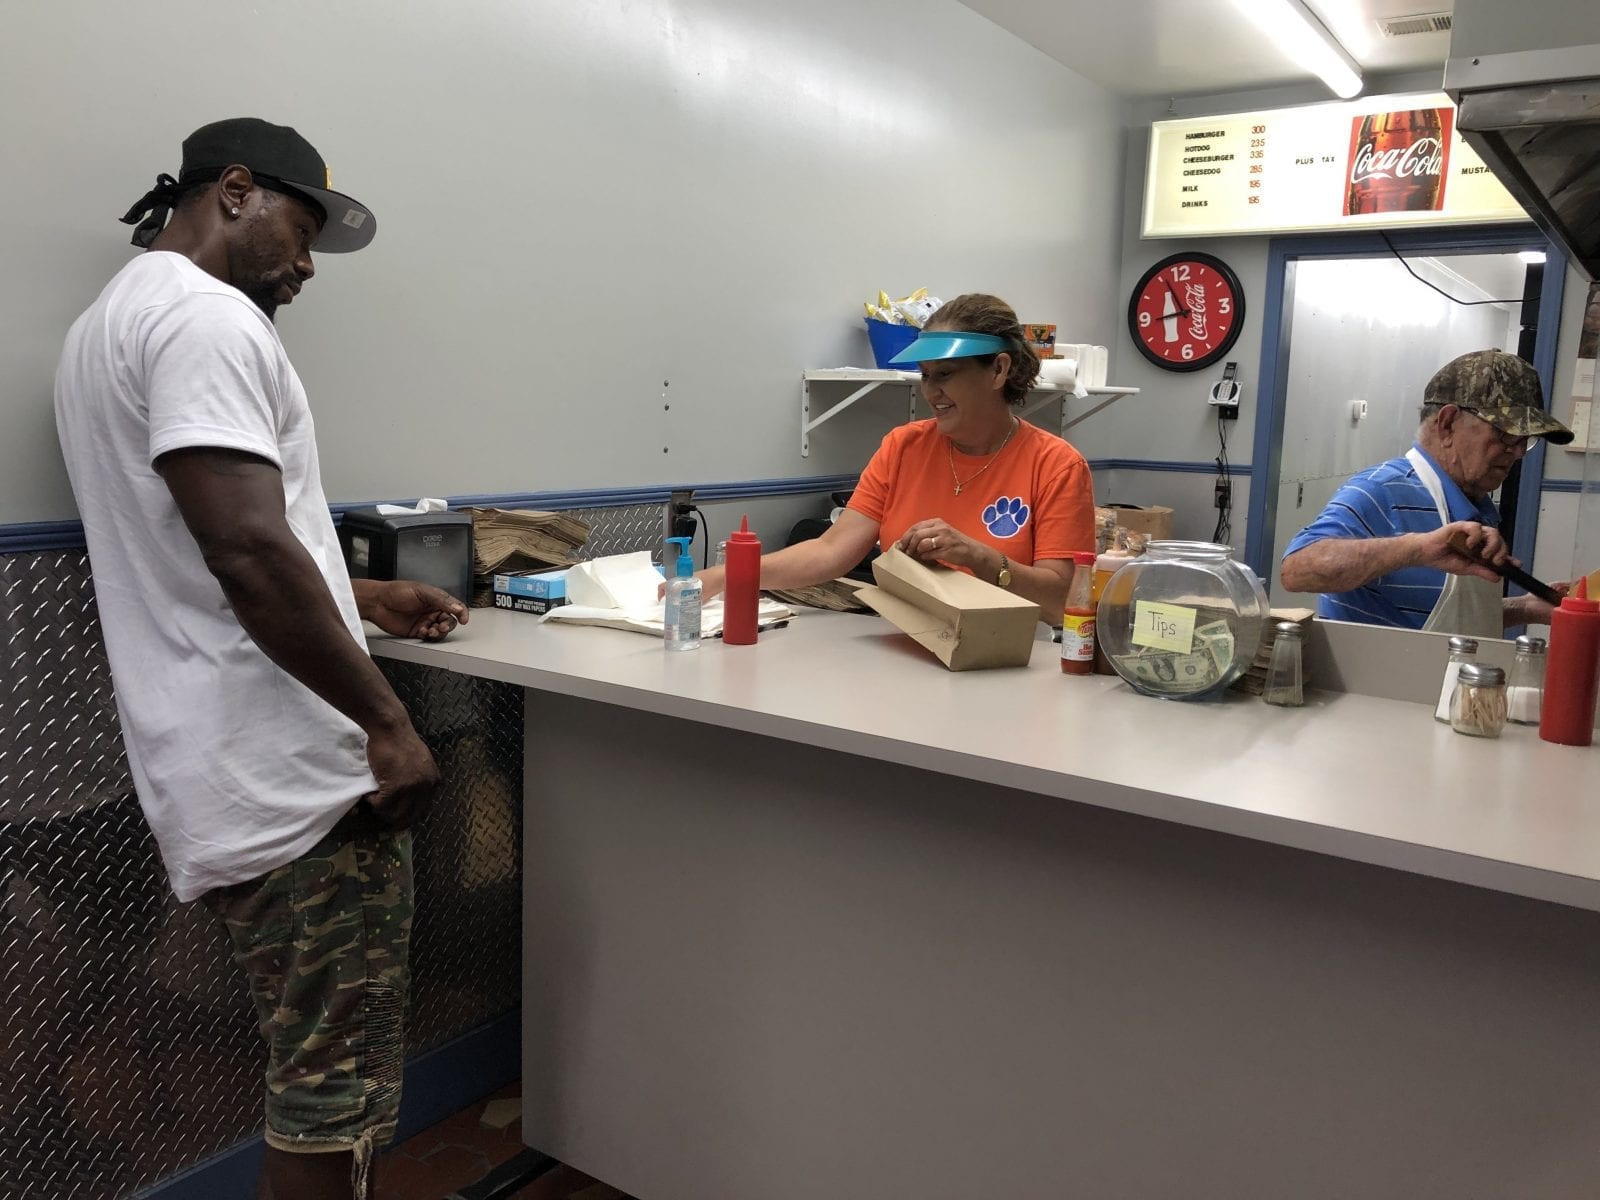 Ward's Grill was 'really busy' serving burgers and dogs